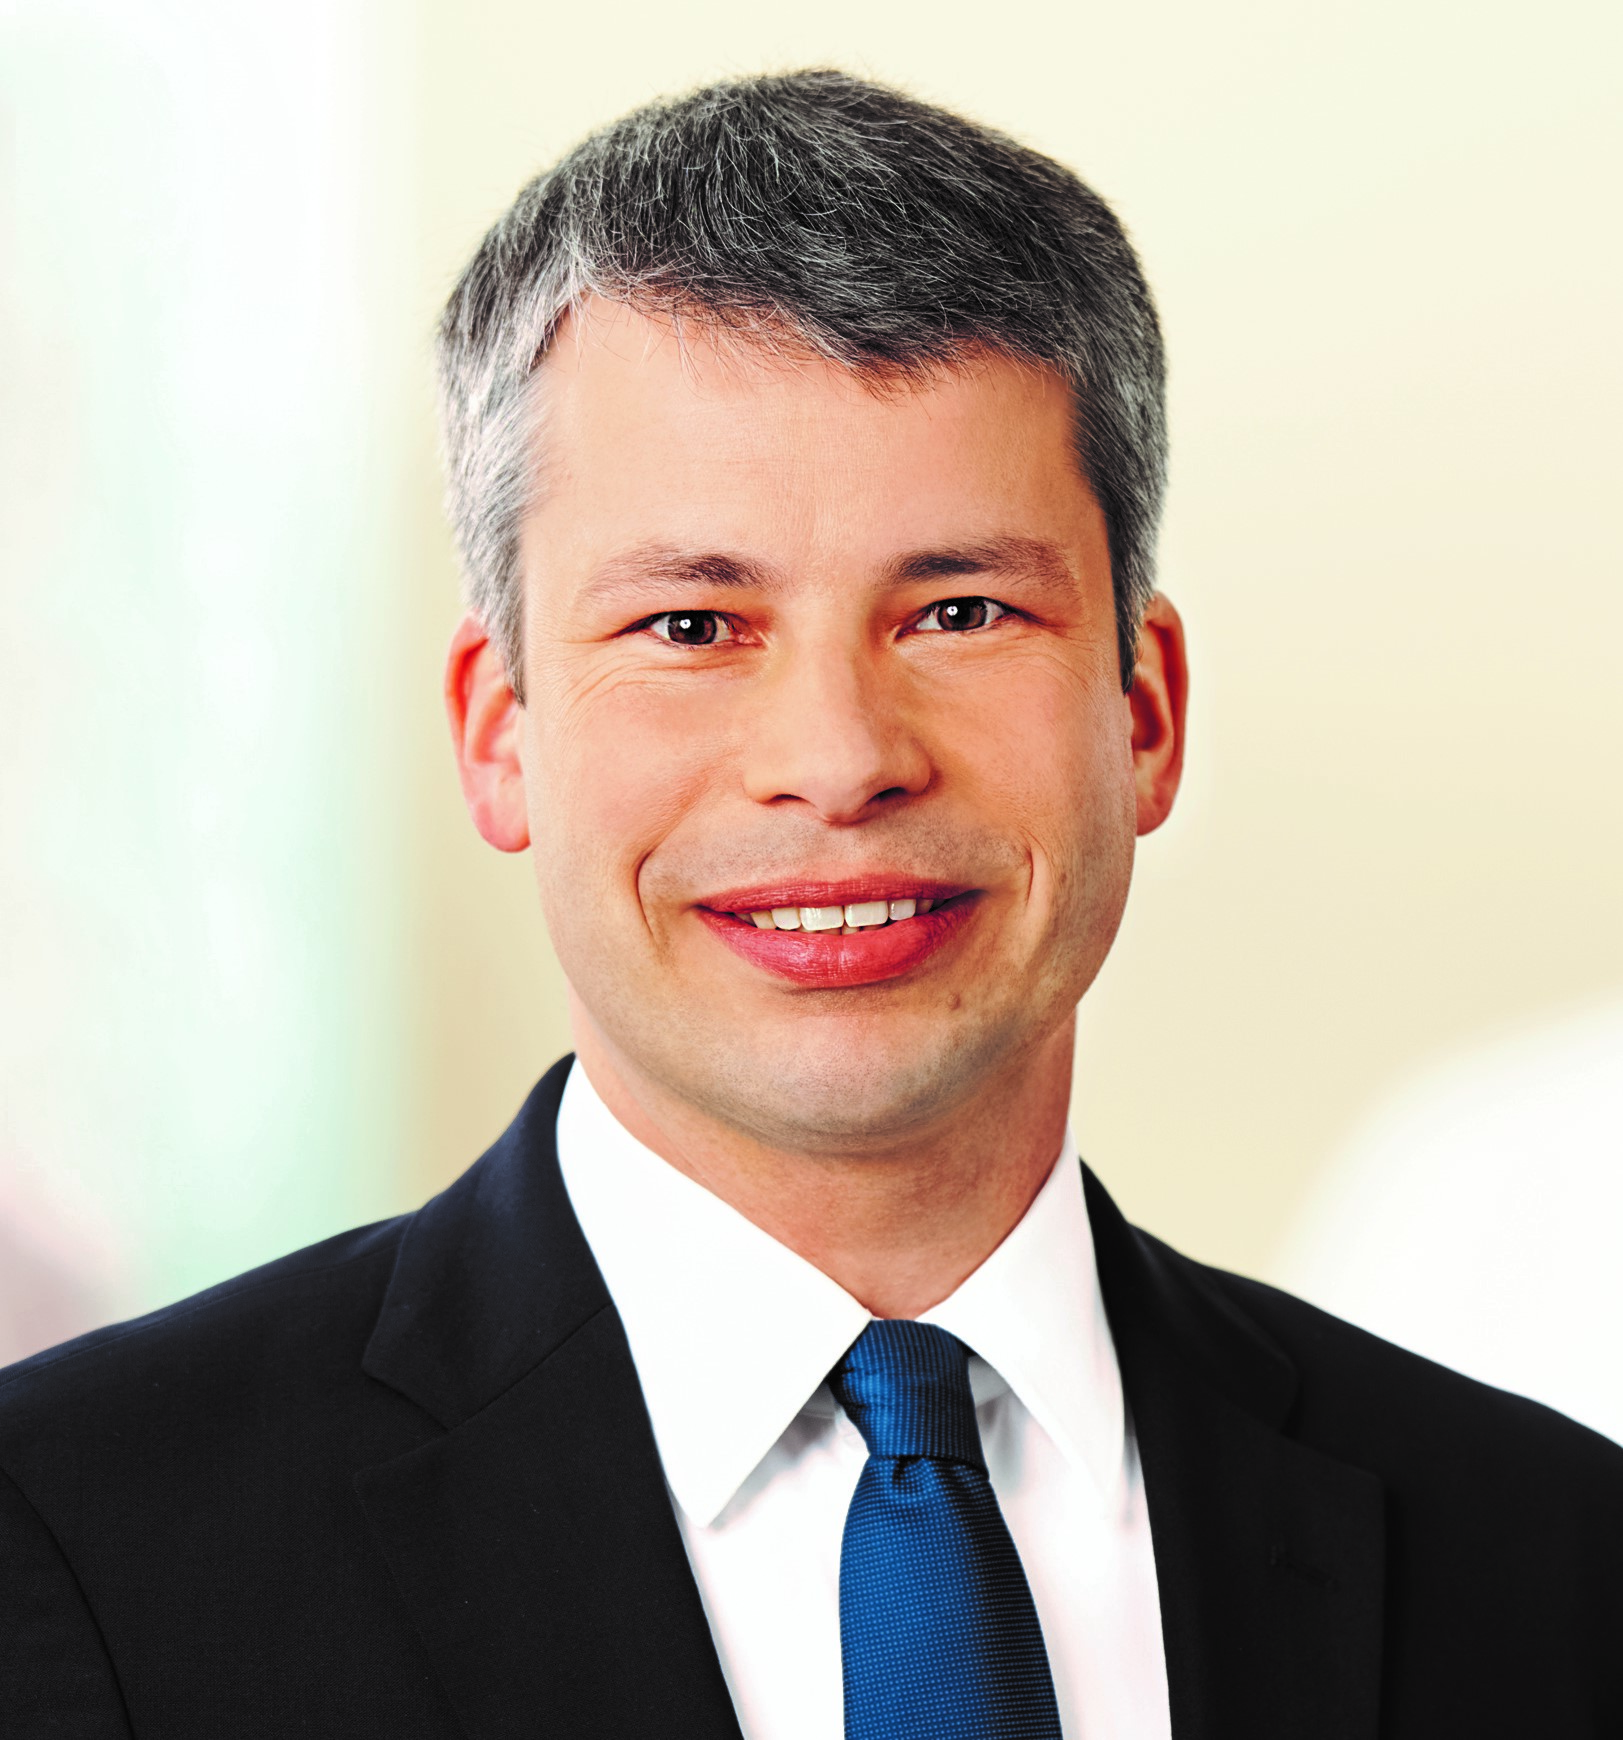 STEFFEN BILGER | PARLIAMENTARY STATE SECRETARY AT THE FEDERAL MINISTER OF TRANSPORT AND DIGITAL INFRASTRUCTURE